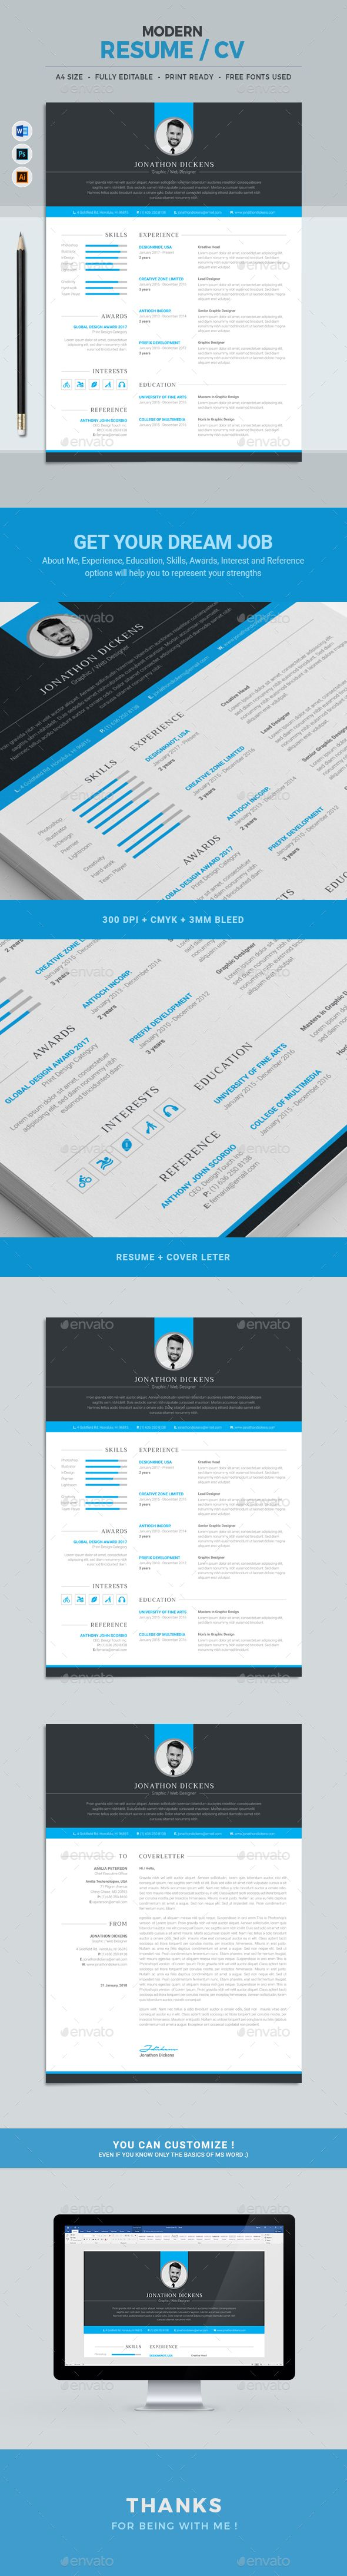 Modern & Clean Resume with strong typographic structure is very easy to use and customize. This minimal resume is very well organized and labeled for you to get the best result in the minimum possible time. About Me, Experience, Education, Skills, Award and Reference sections included in this Resume template which will help you to express your strengths and to get your dream job.